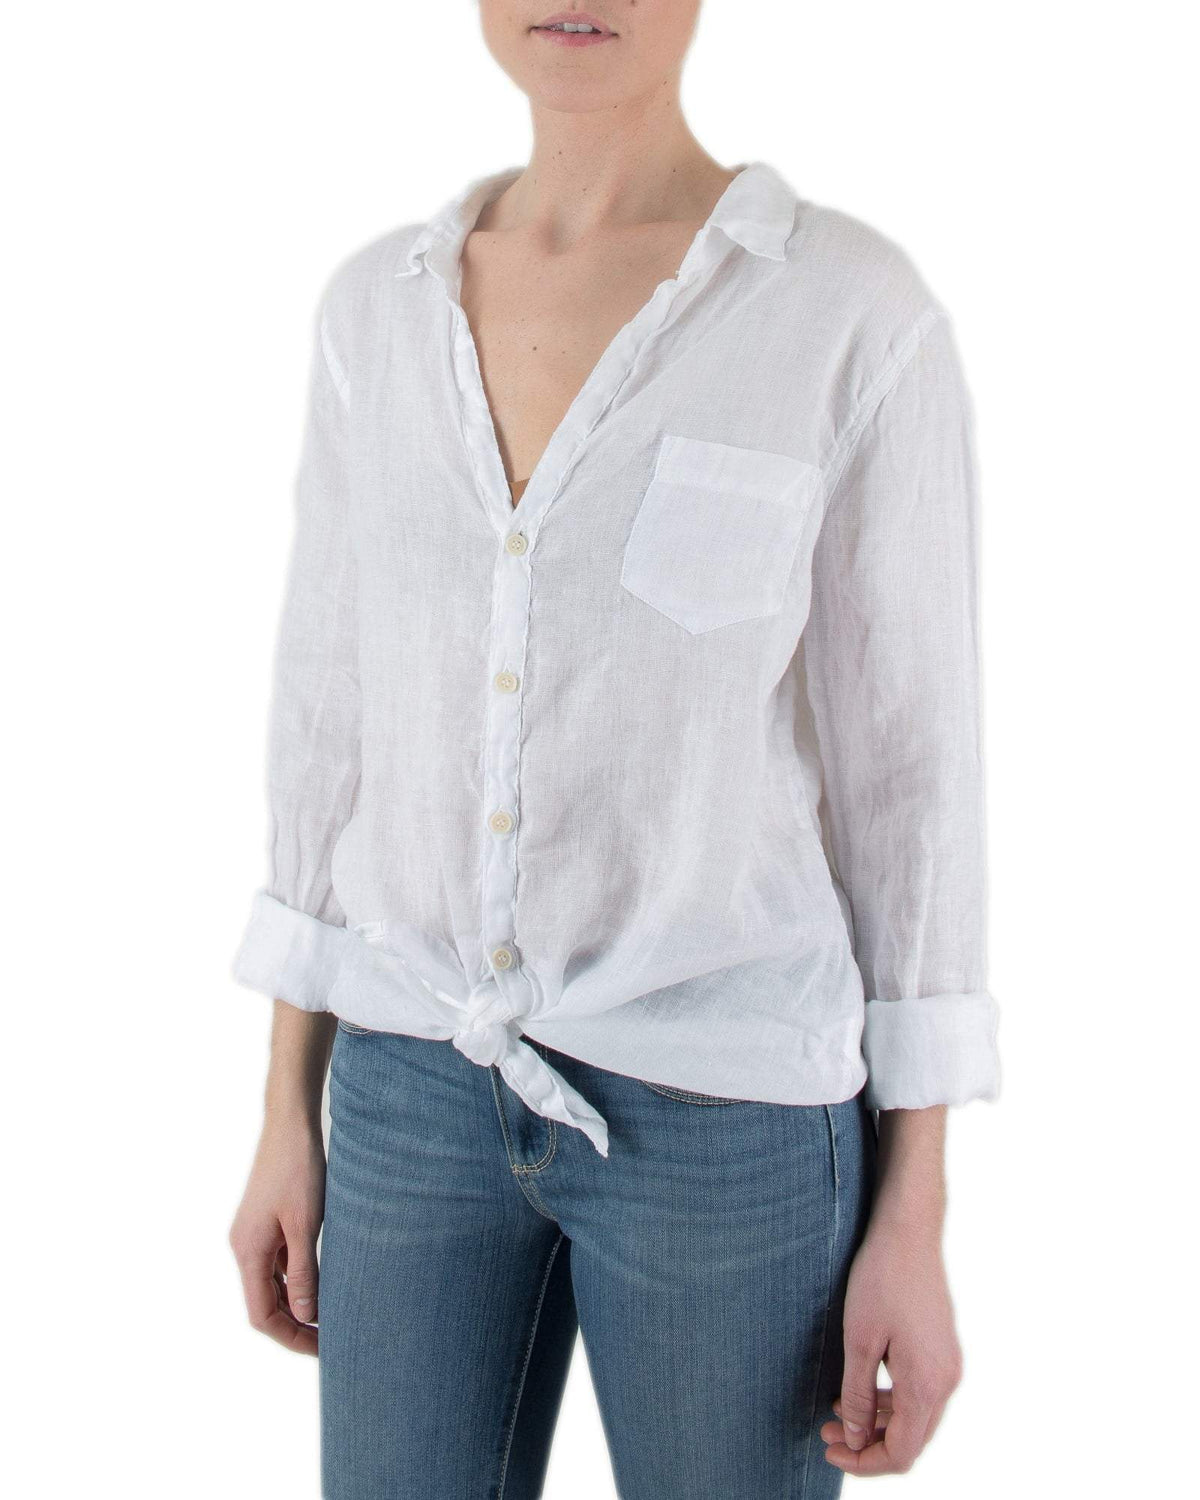 CP Shades Clothing White / XS Sloane Blouse